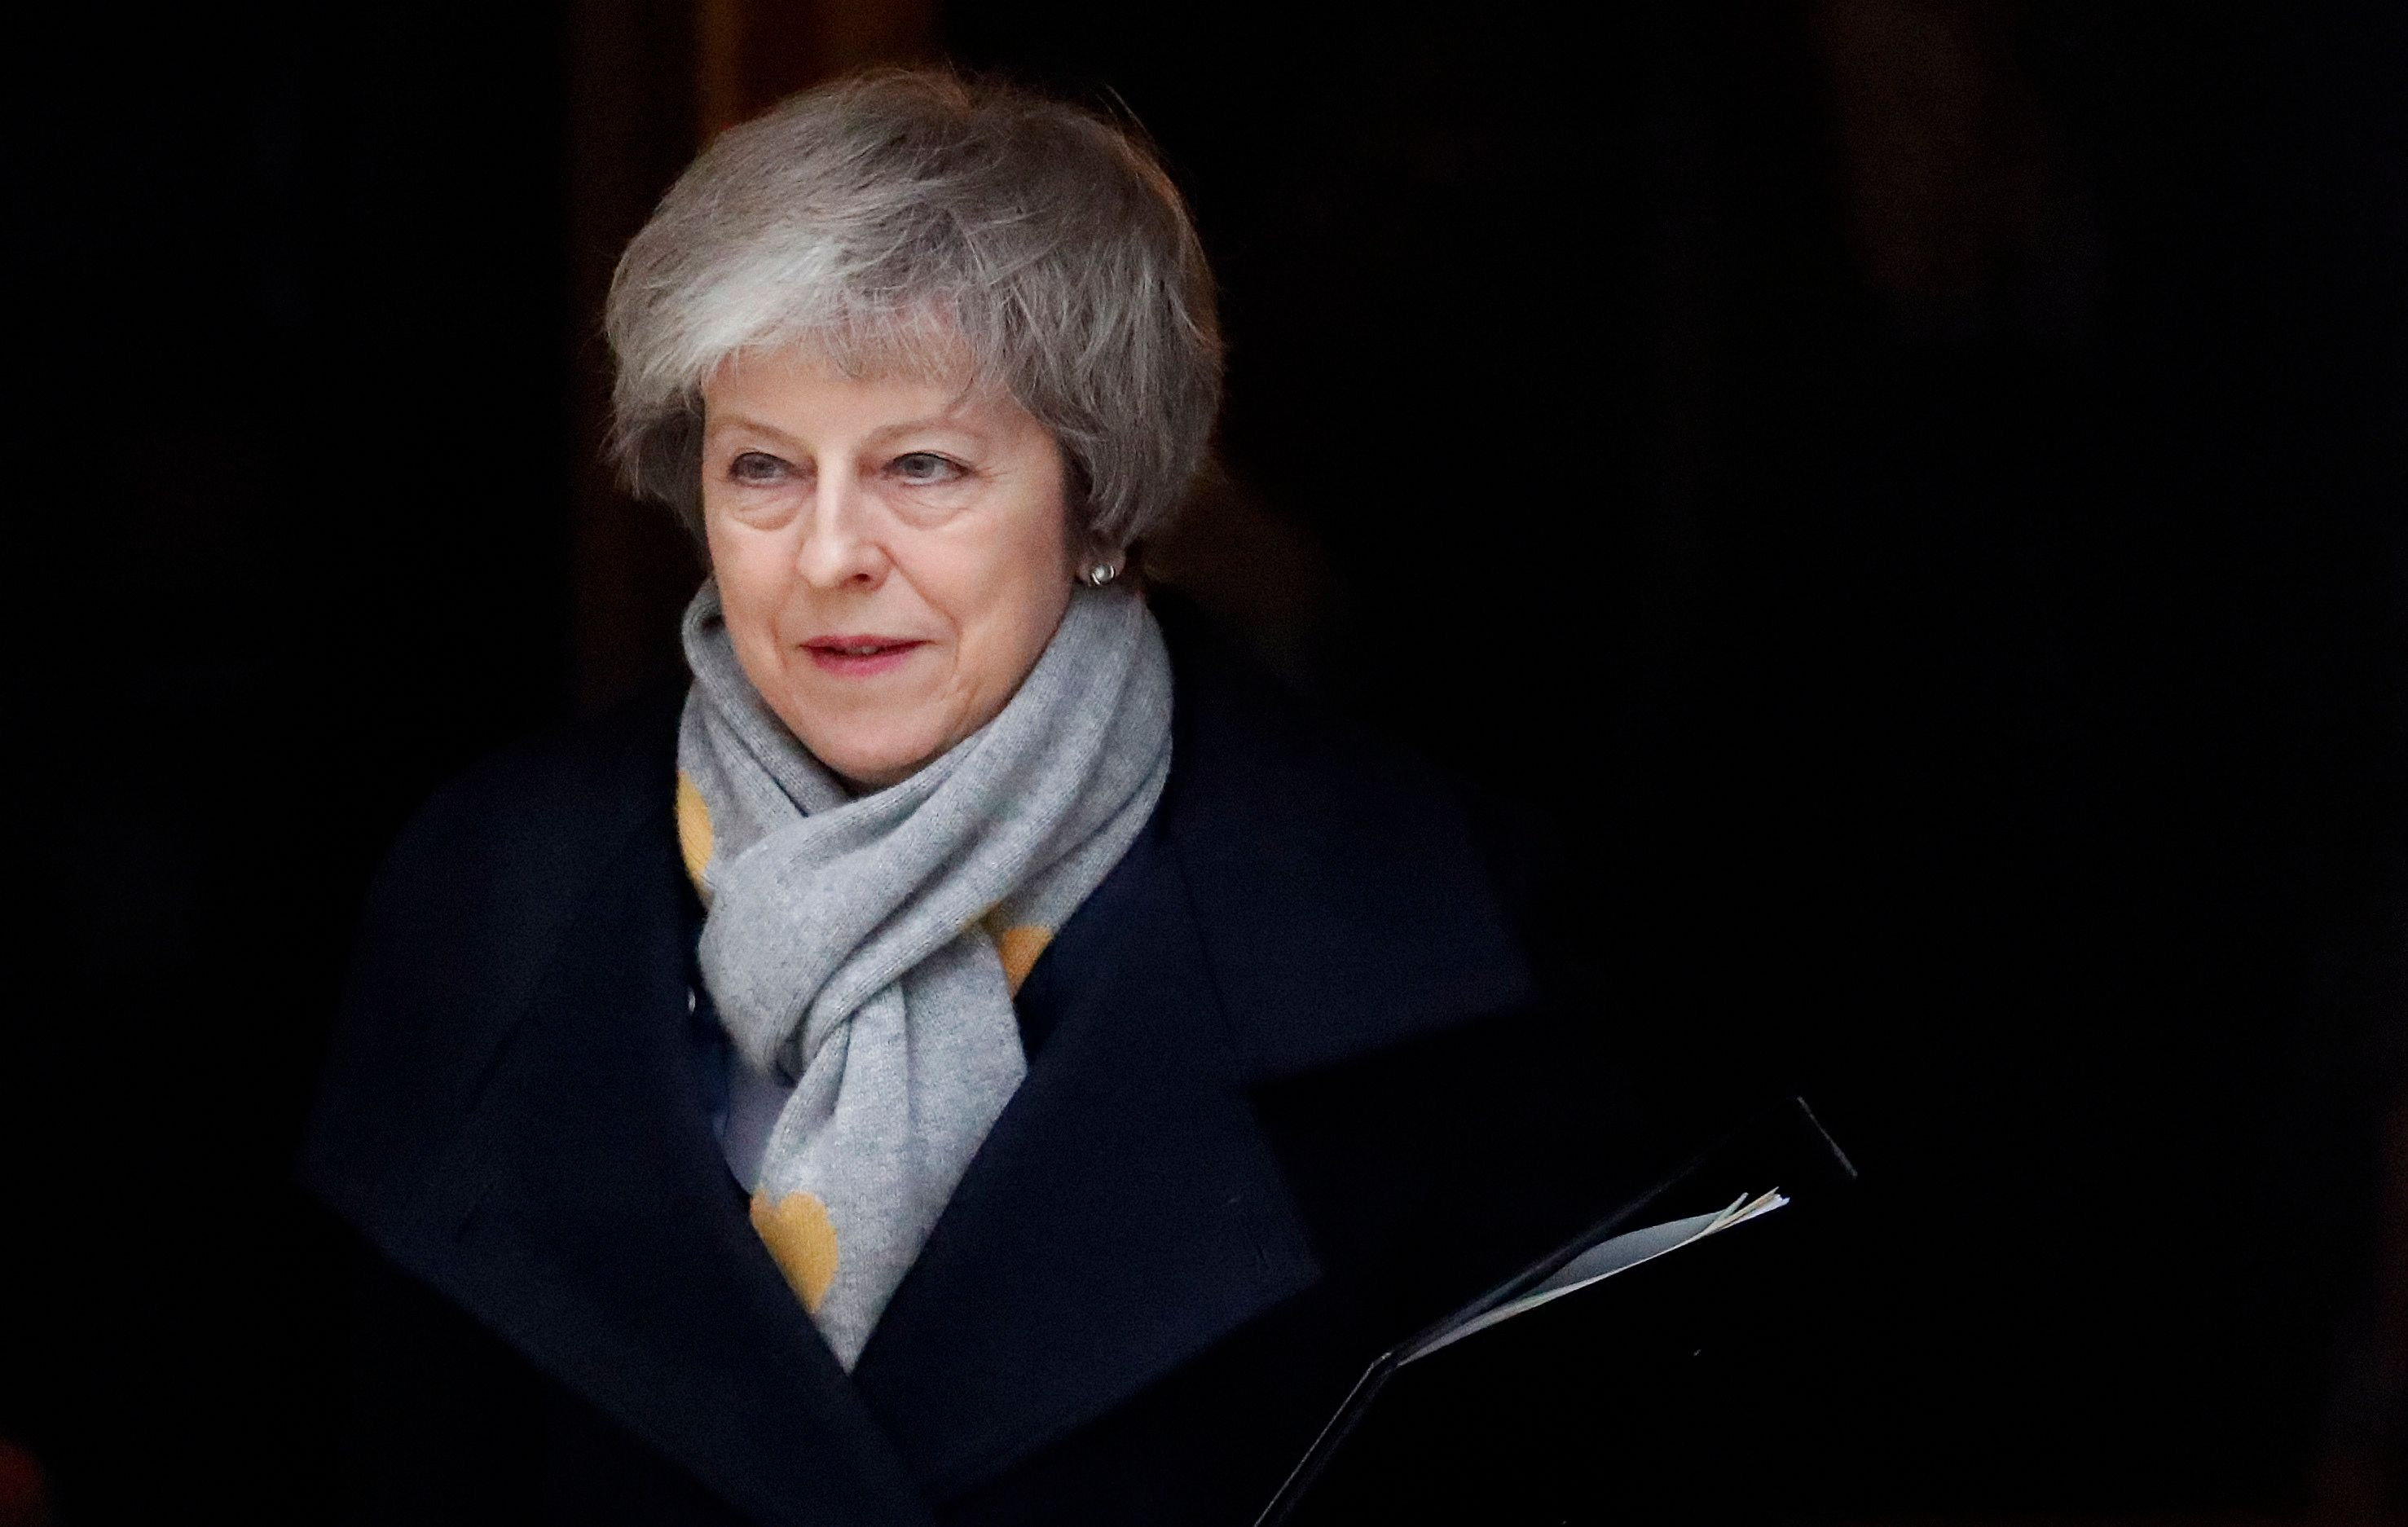 UK Prime Minister Theresa May Faces No Confidence